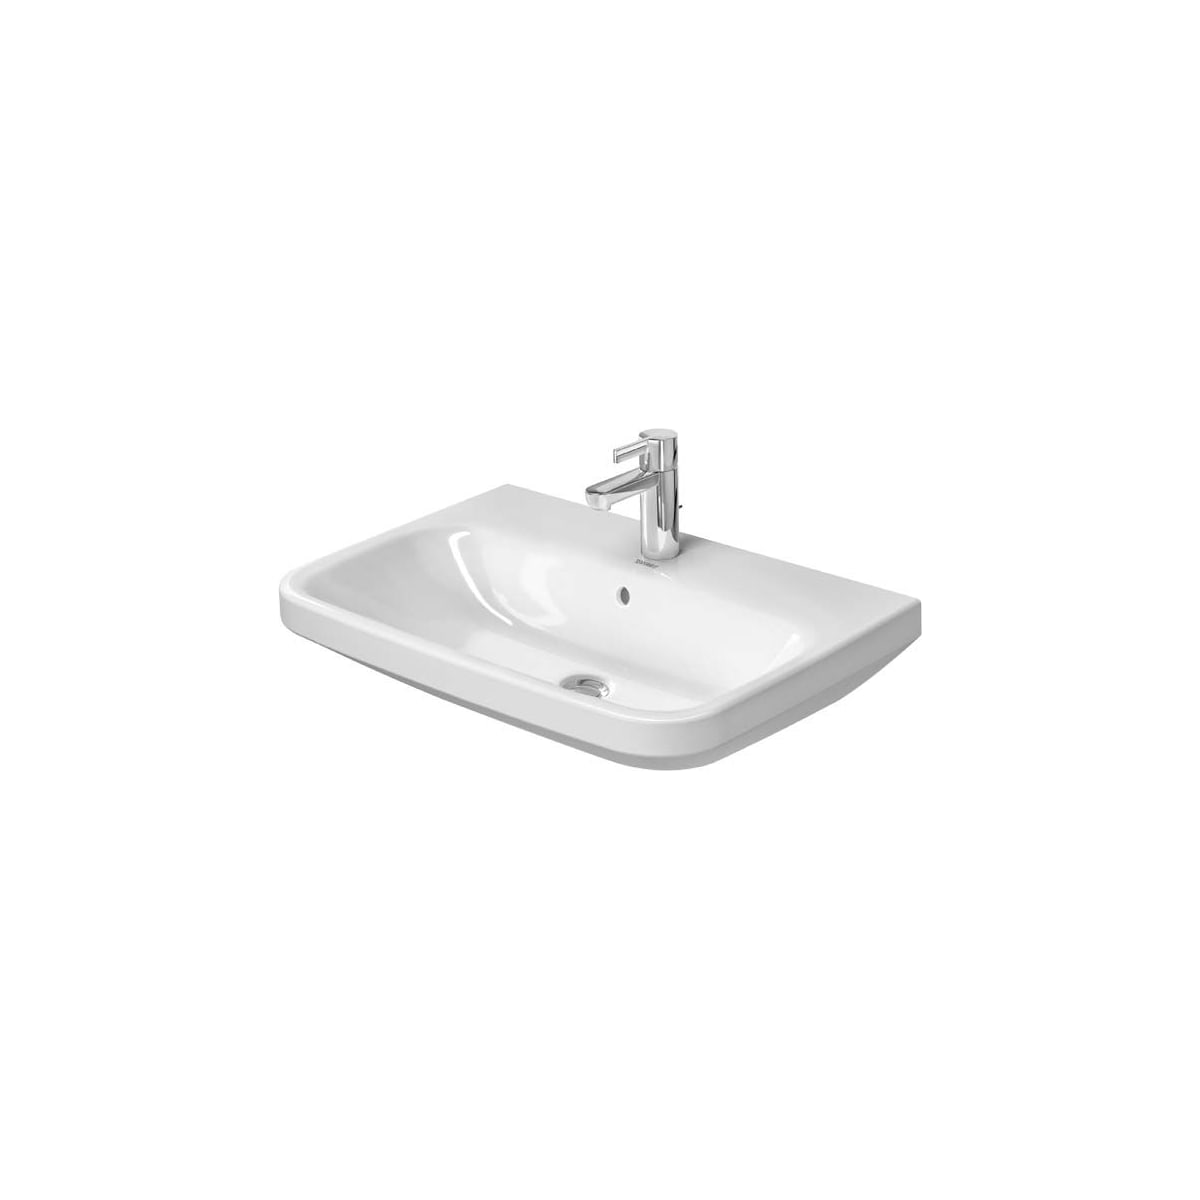 Duravit 2319650000 White Glazed Underside Durastyle 25 5 8 Rectangular Ceramic Wall Mounted Bathroom Sink With Overflow And Single Faucet Hole Faucetdirect Com